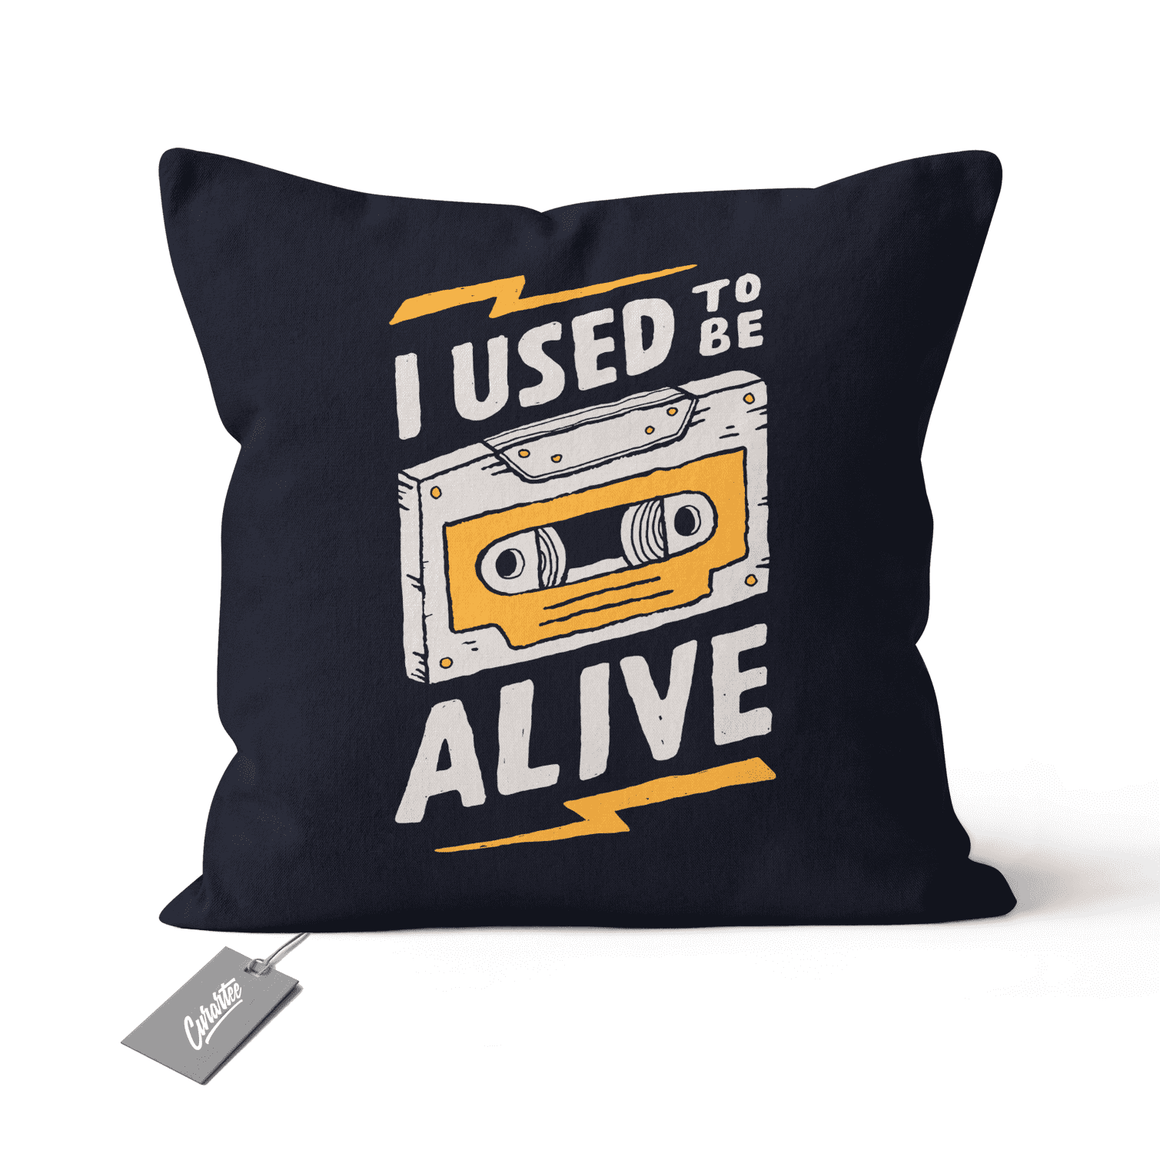 Alive Cushion